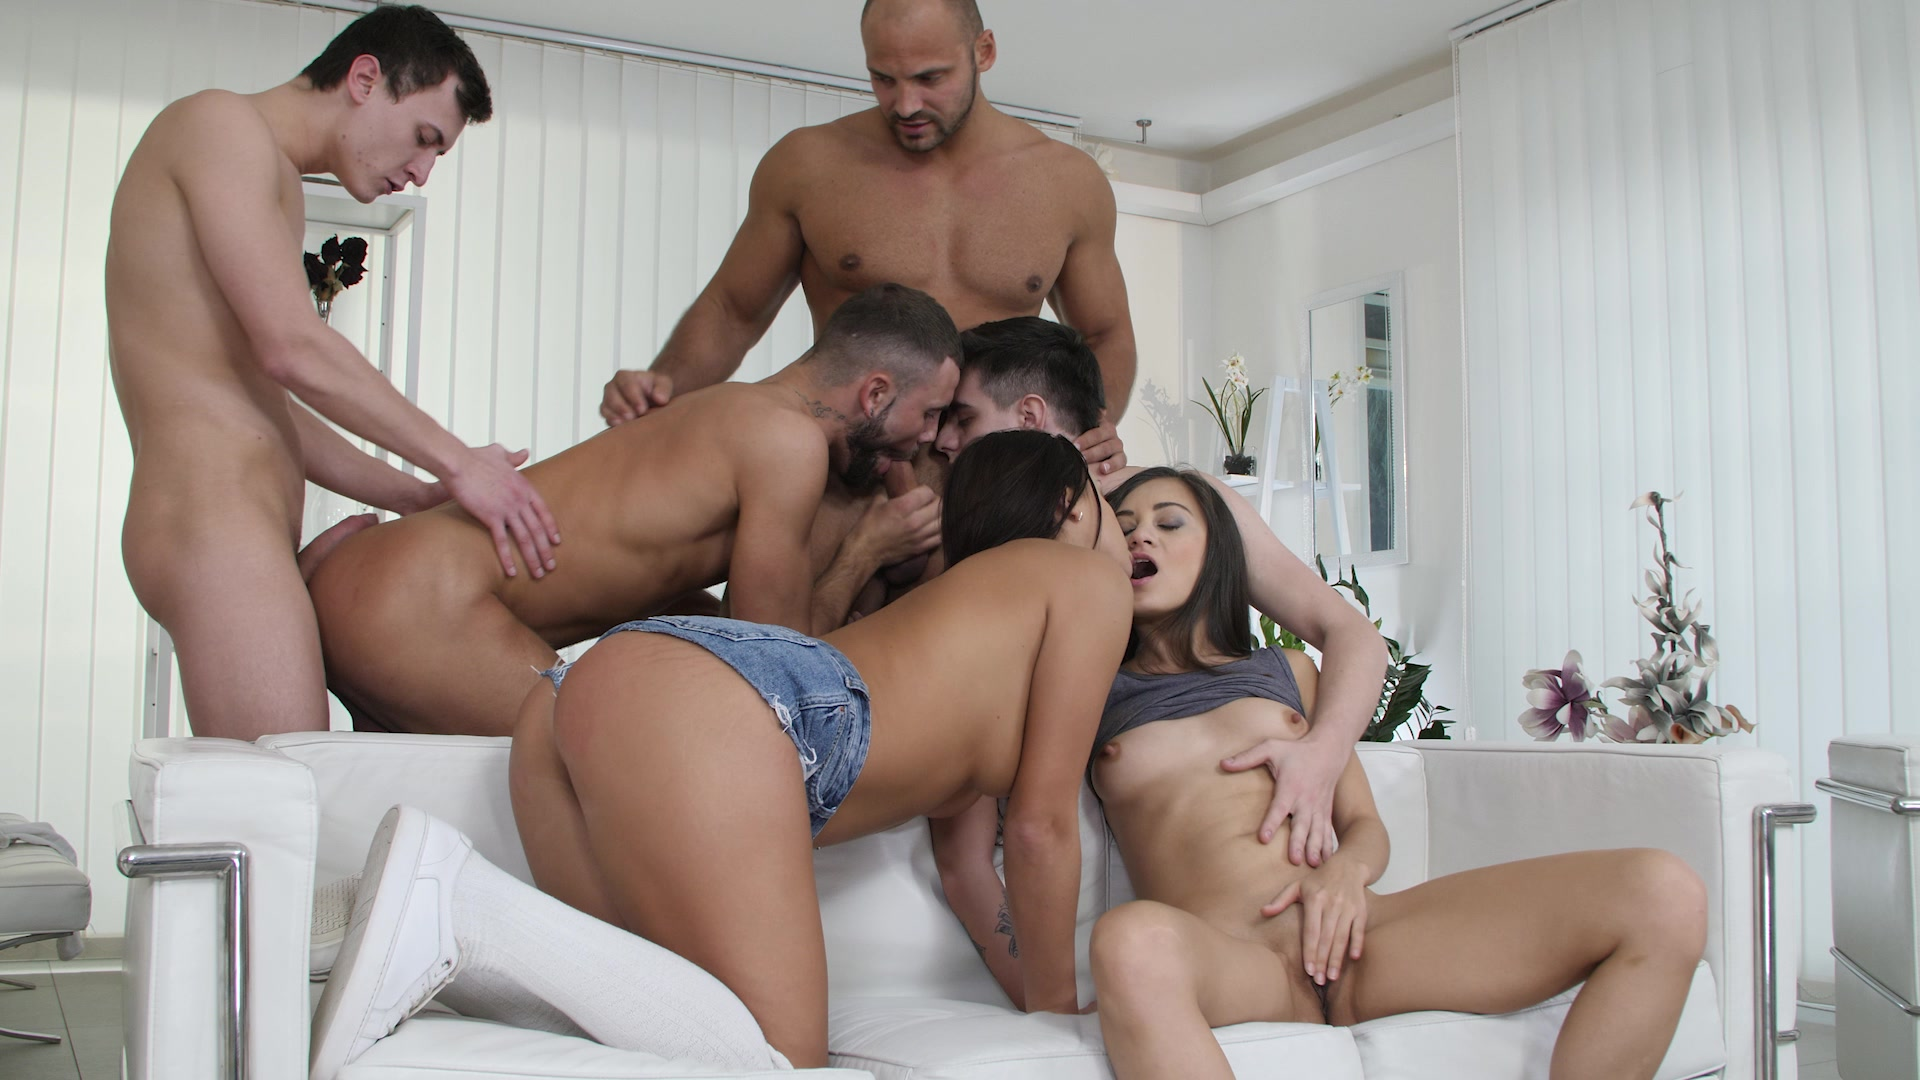 Bisexual orgy porn